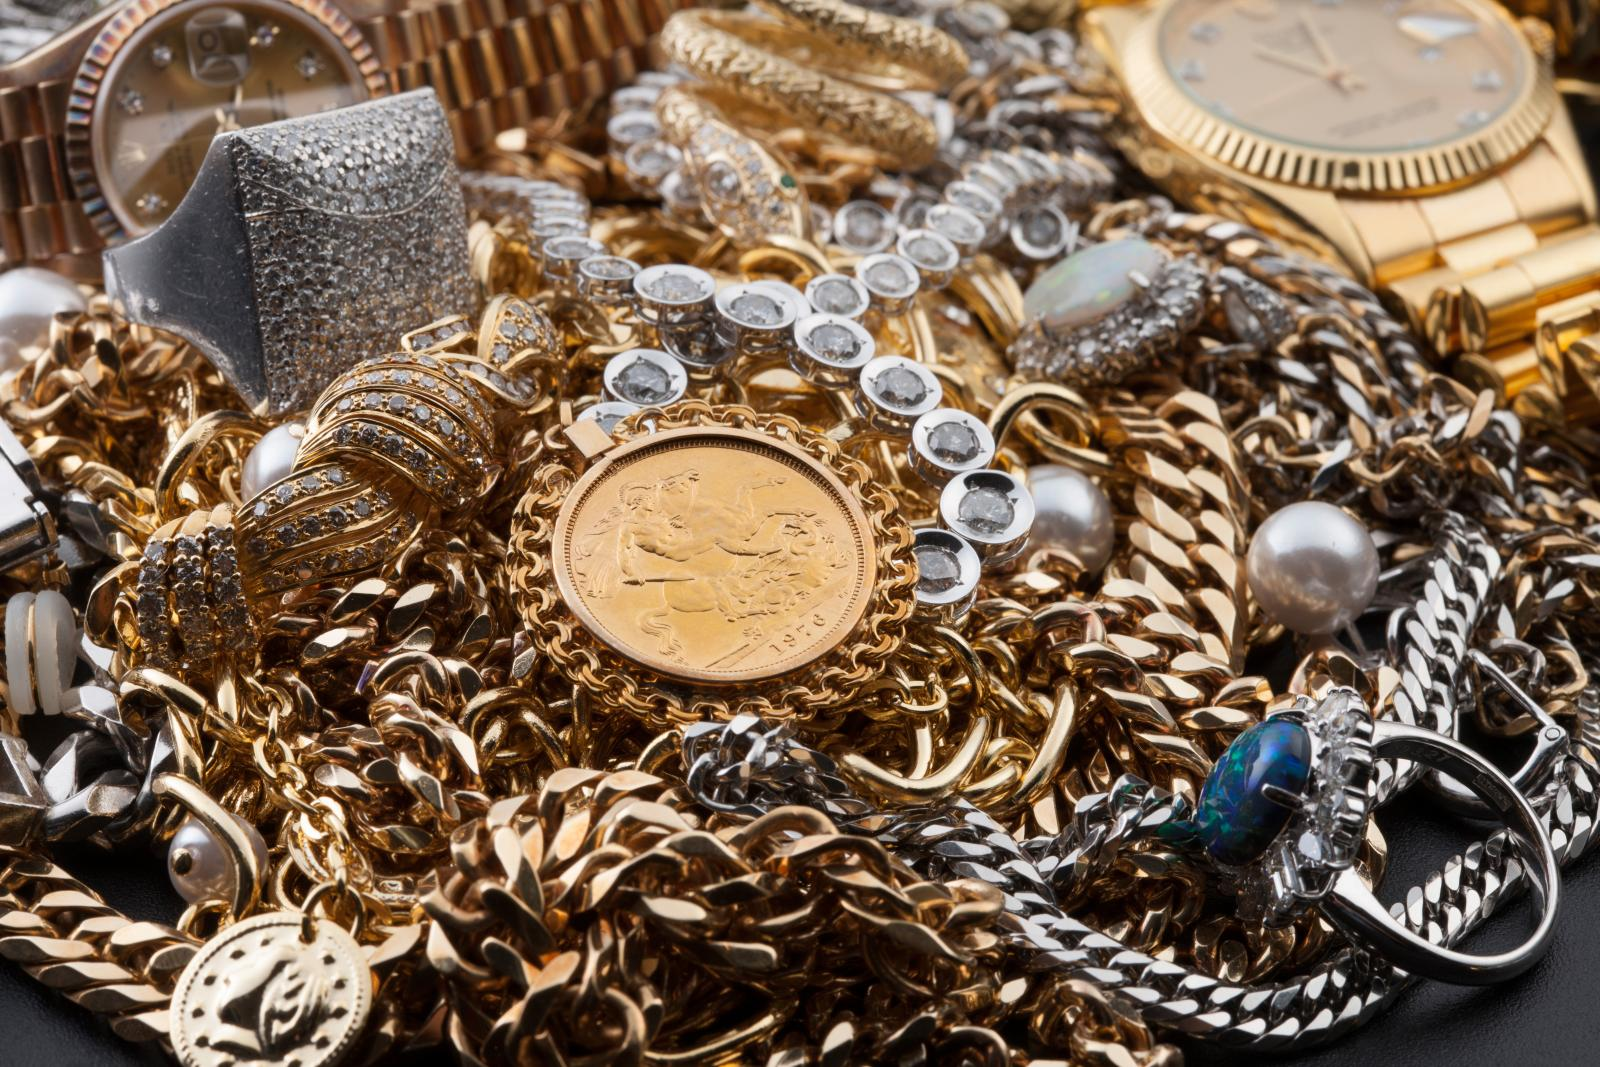 Precious metals in need of preparation for storage unit.